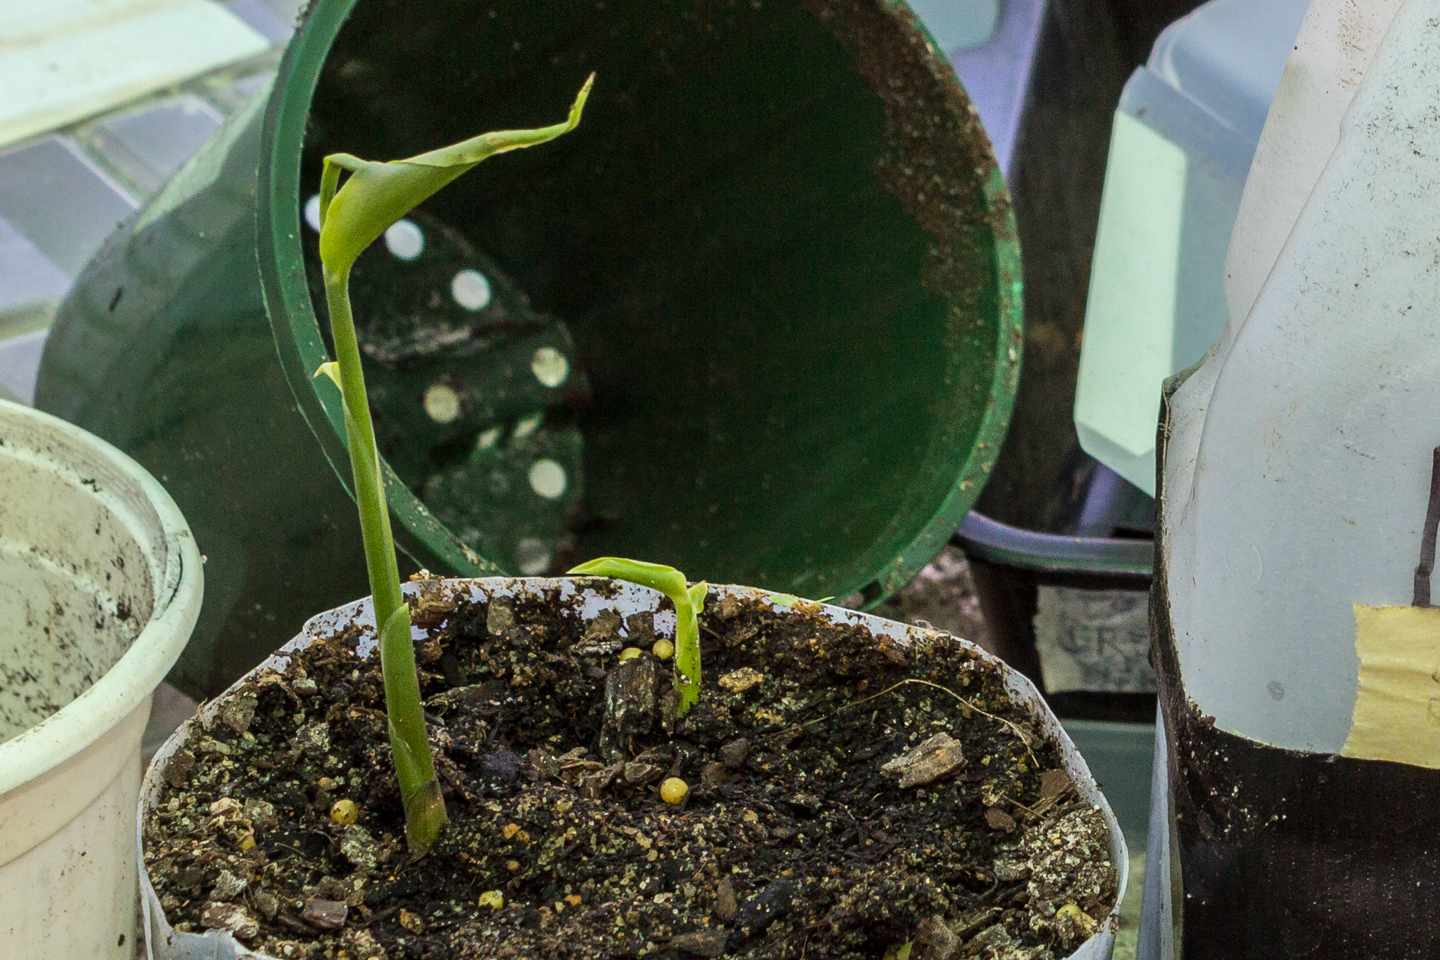 12/11/15 Day 47: 2nd bud is growing leaves